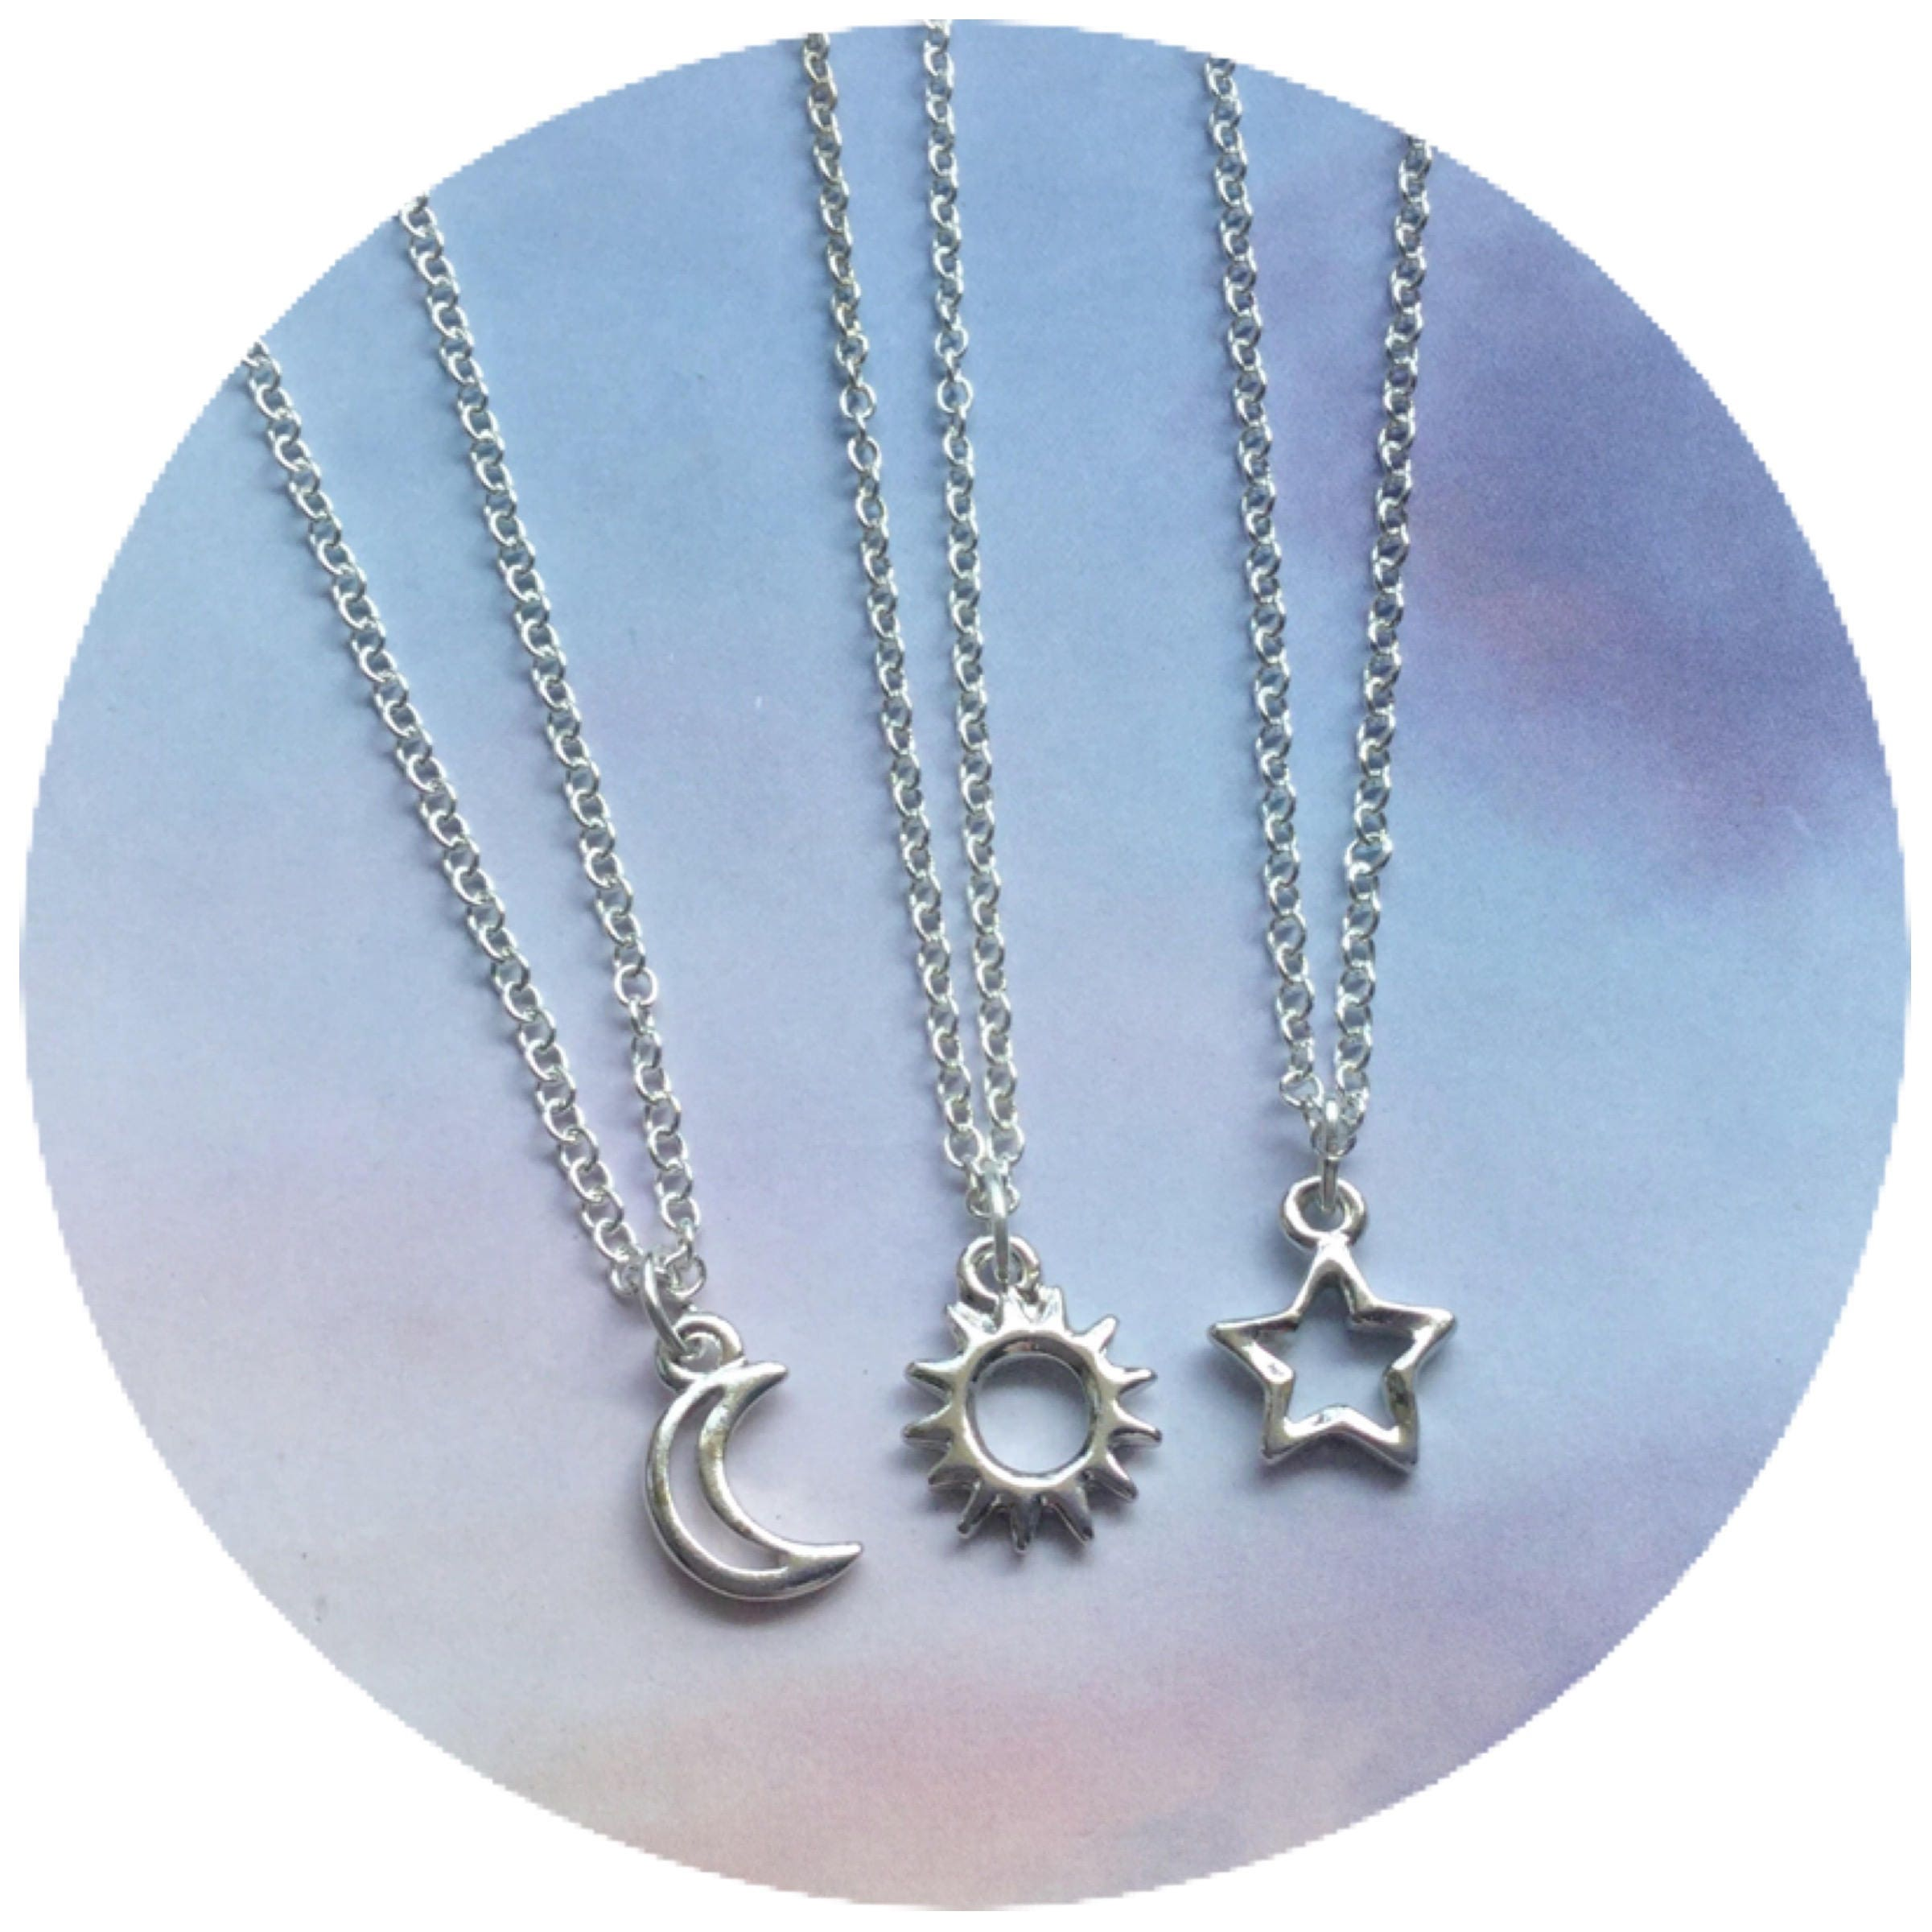 triple celestial silver wicca handmade sun il necklace mhaw listing fullxfull adjustable moon pagan star